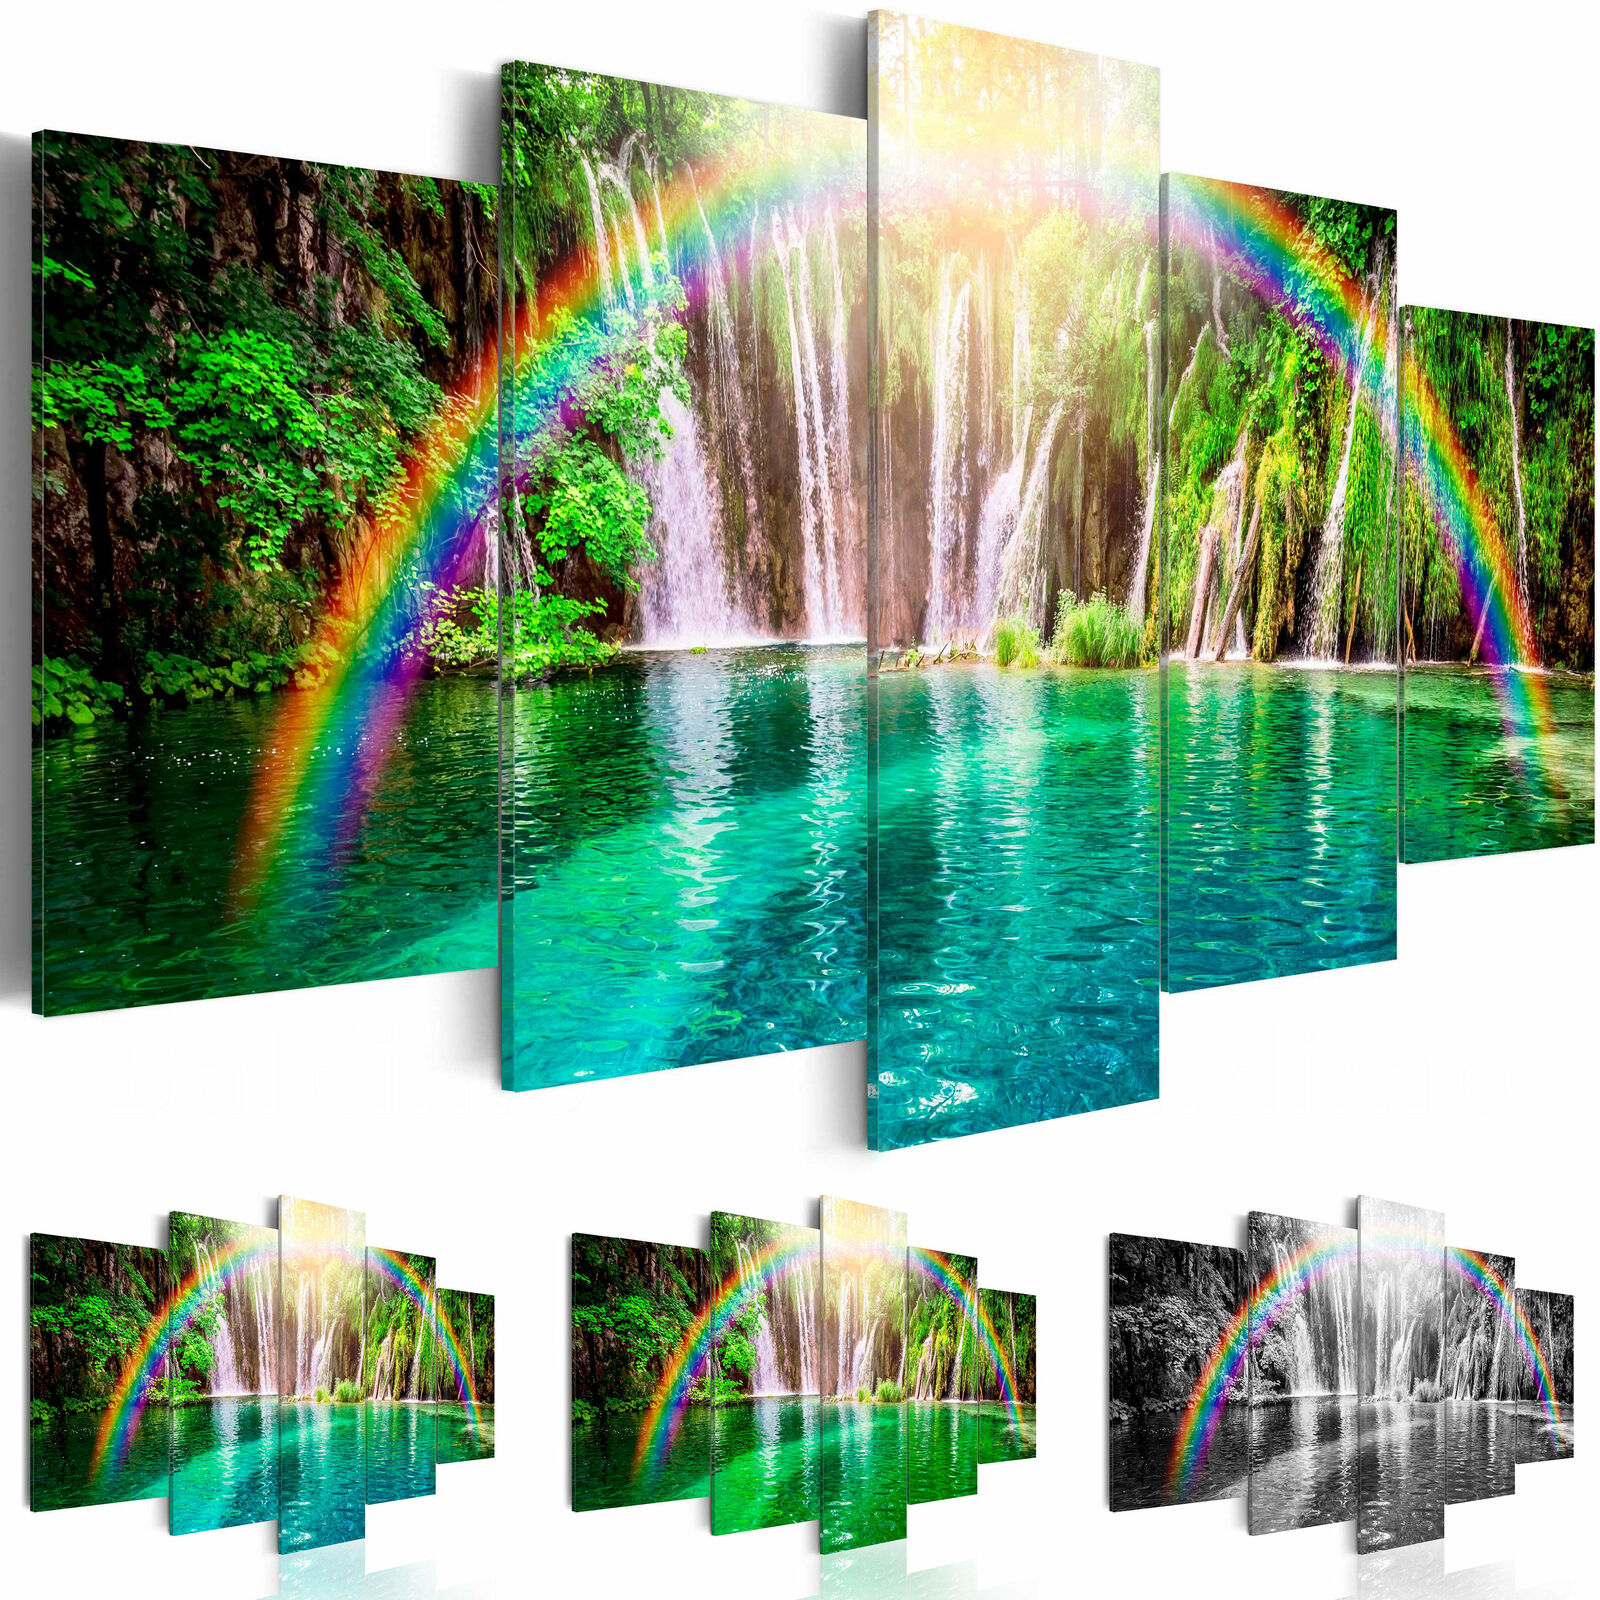 leinwand bilder xxl fertig aufgespannt bild natur regenbogen c a 0071 b n eur 24 90. Black Bedroom Furniture Sets. Home Design Ideas